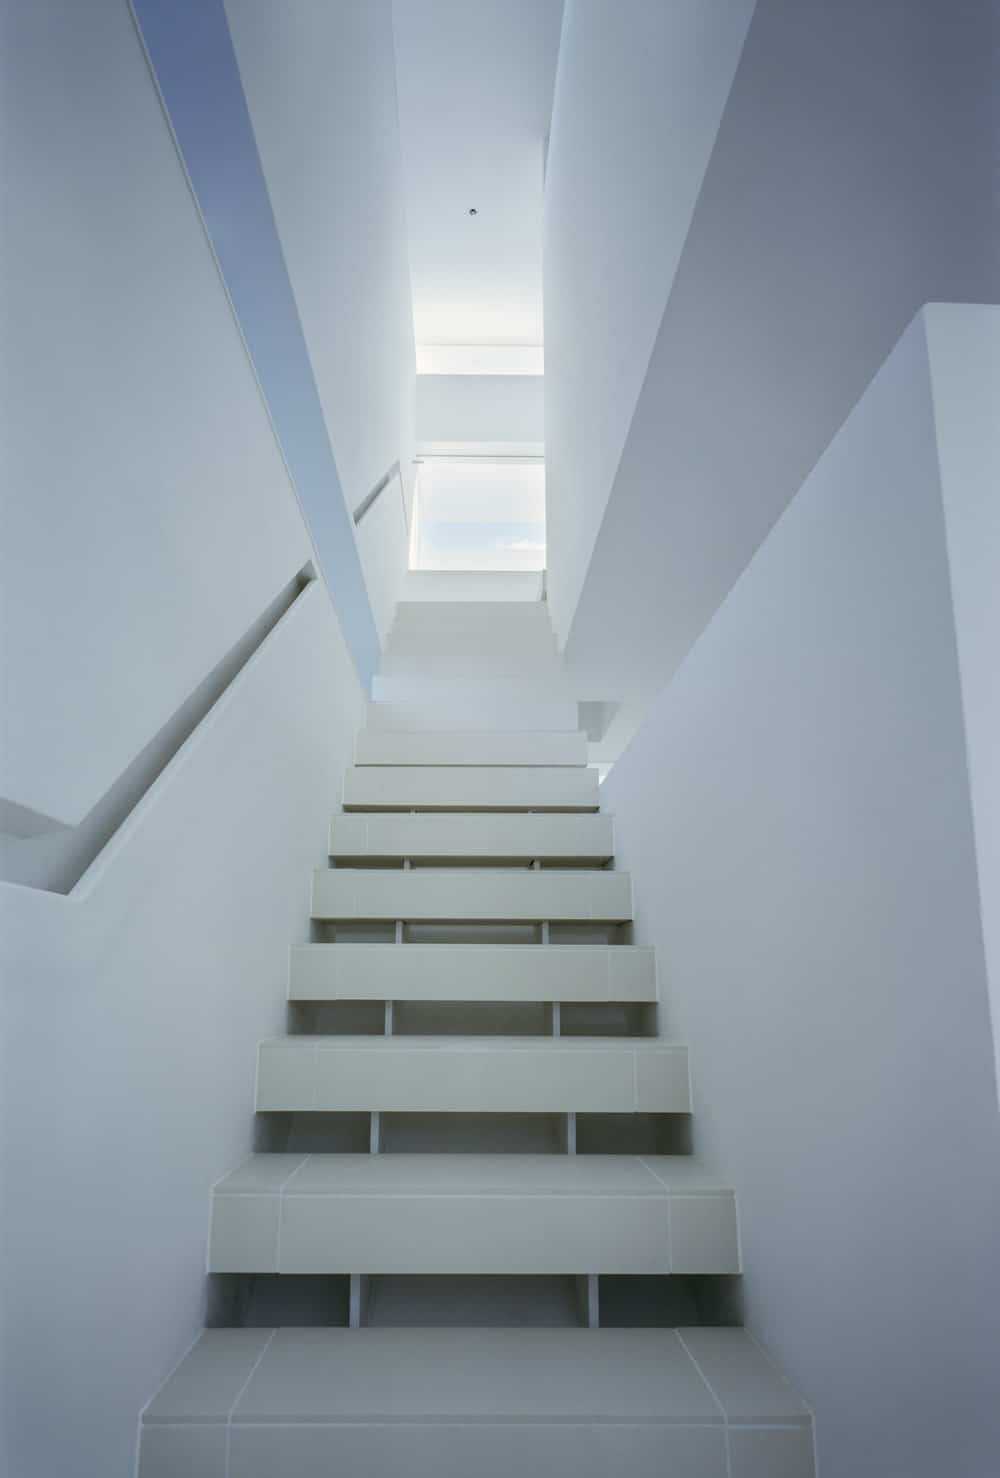 Tiled staircase in the House in Takamatsu designed by Fujiwaramuro Architects.